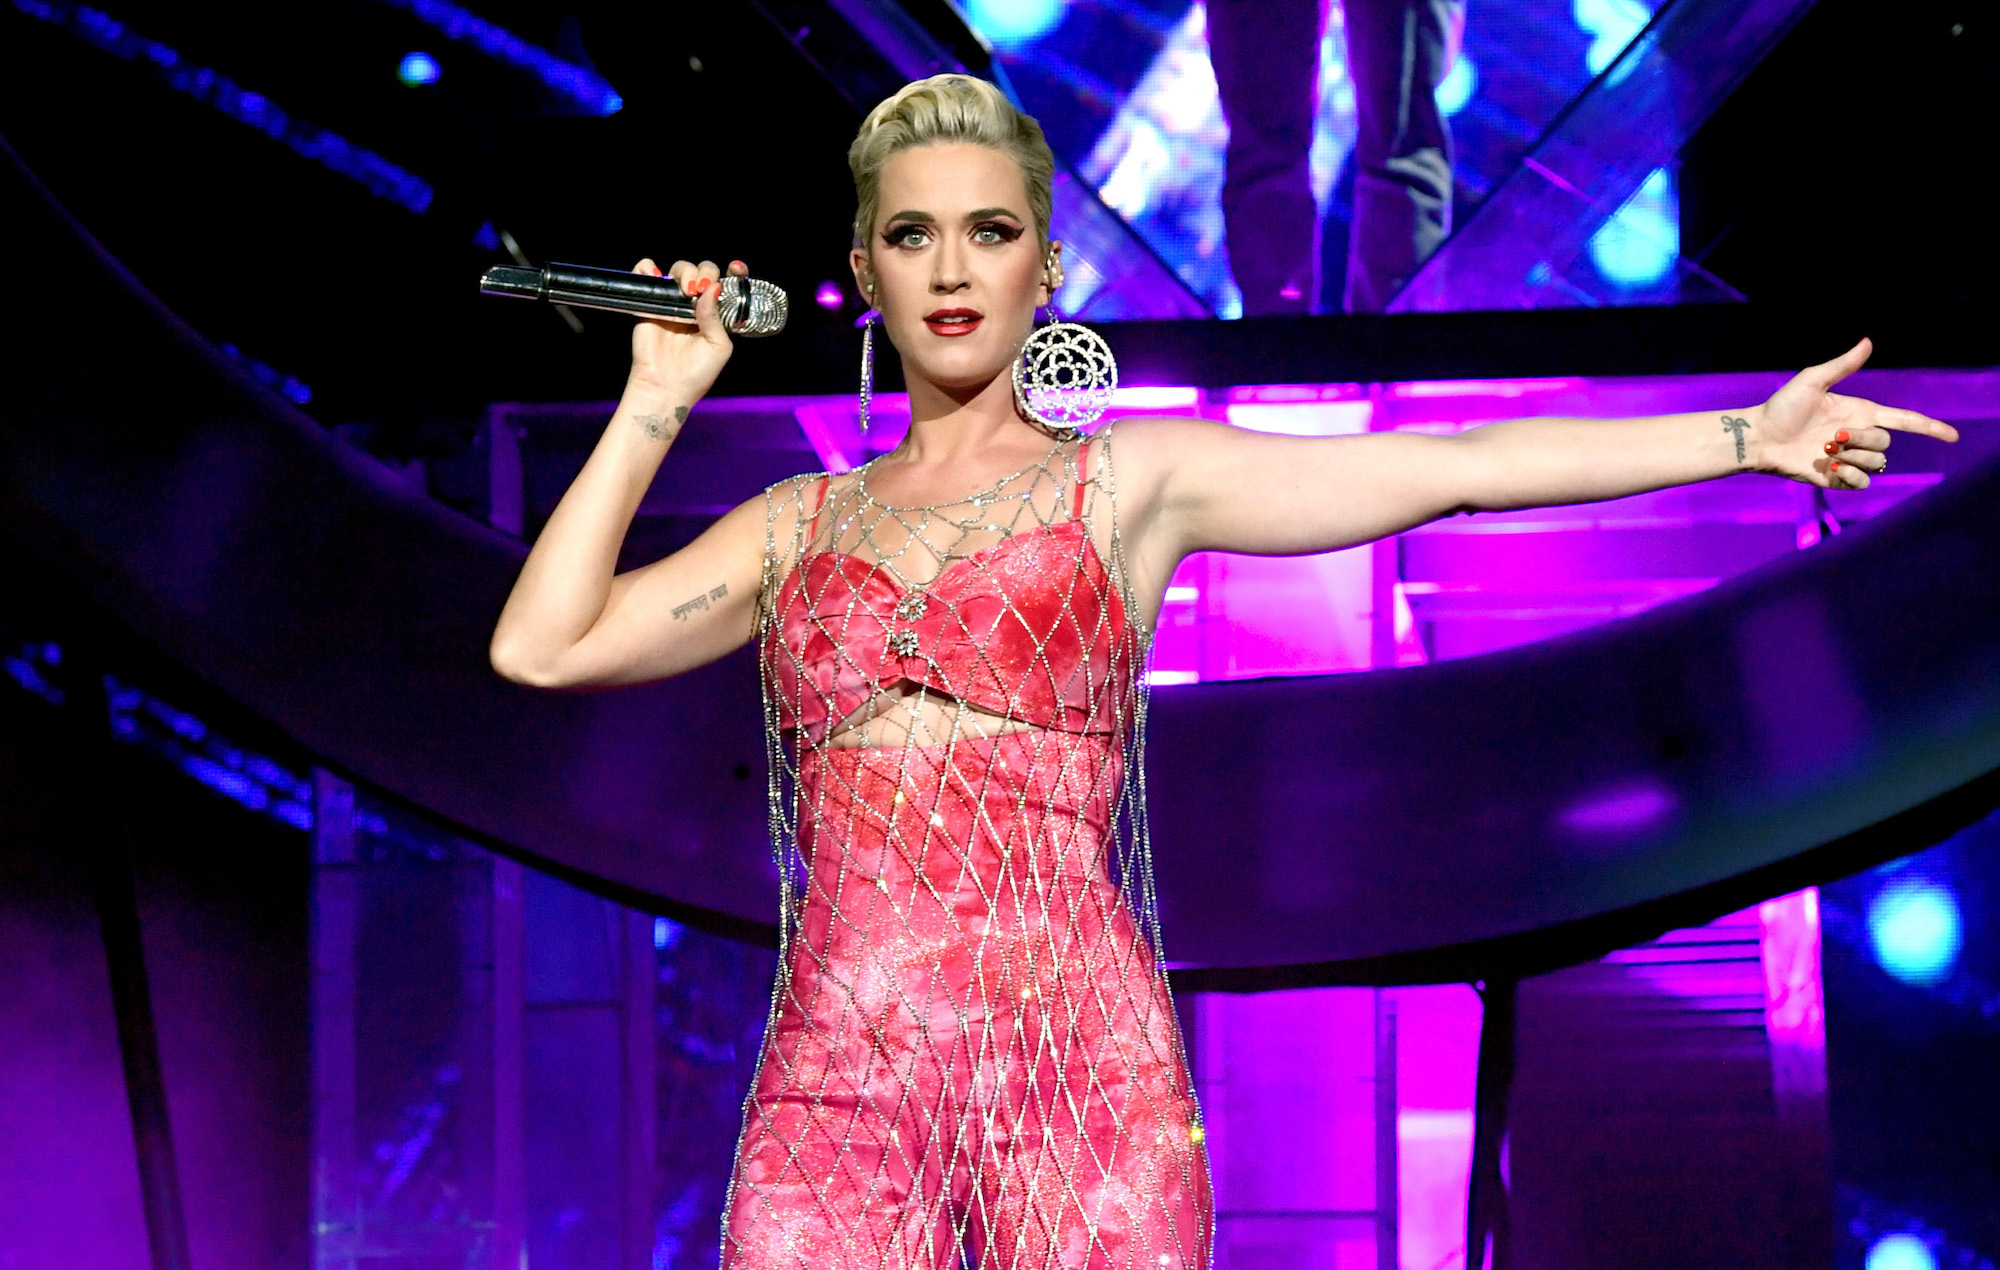 Watch Katy Perry make surprise appearance on final day of Coachella 2019